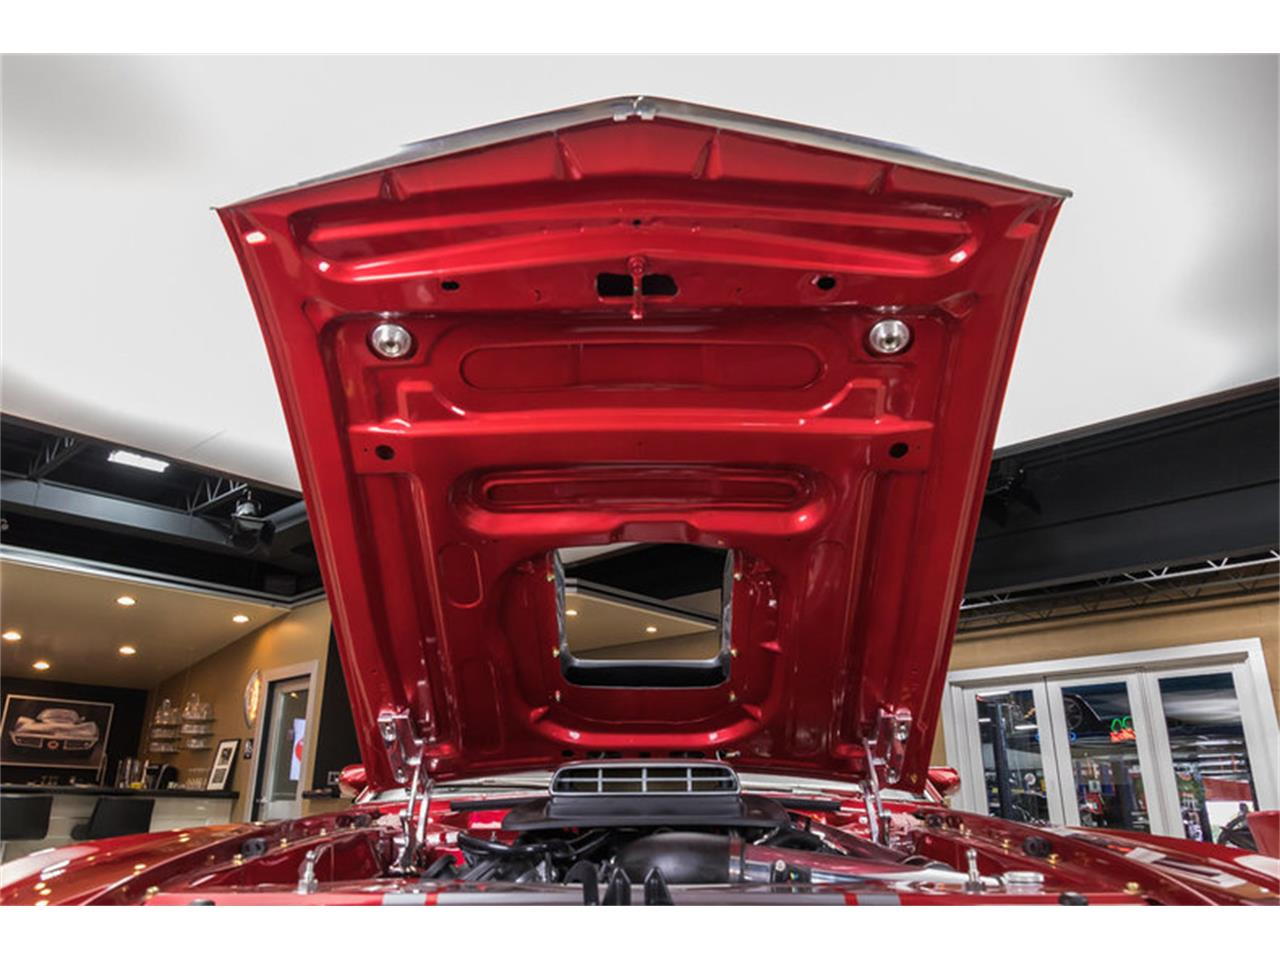 Large Picture of Classic '69 Mustang Fastback Restomod located in Michigan - $194,900.00 - L6C8